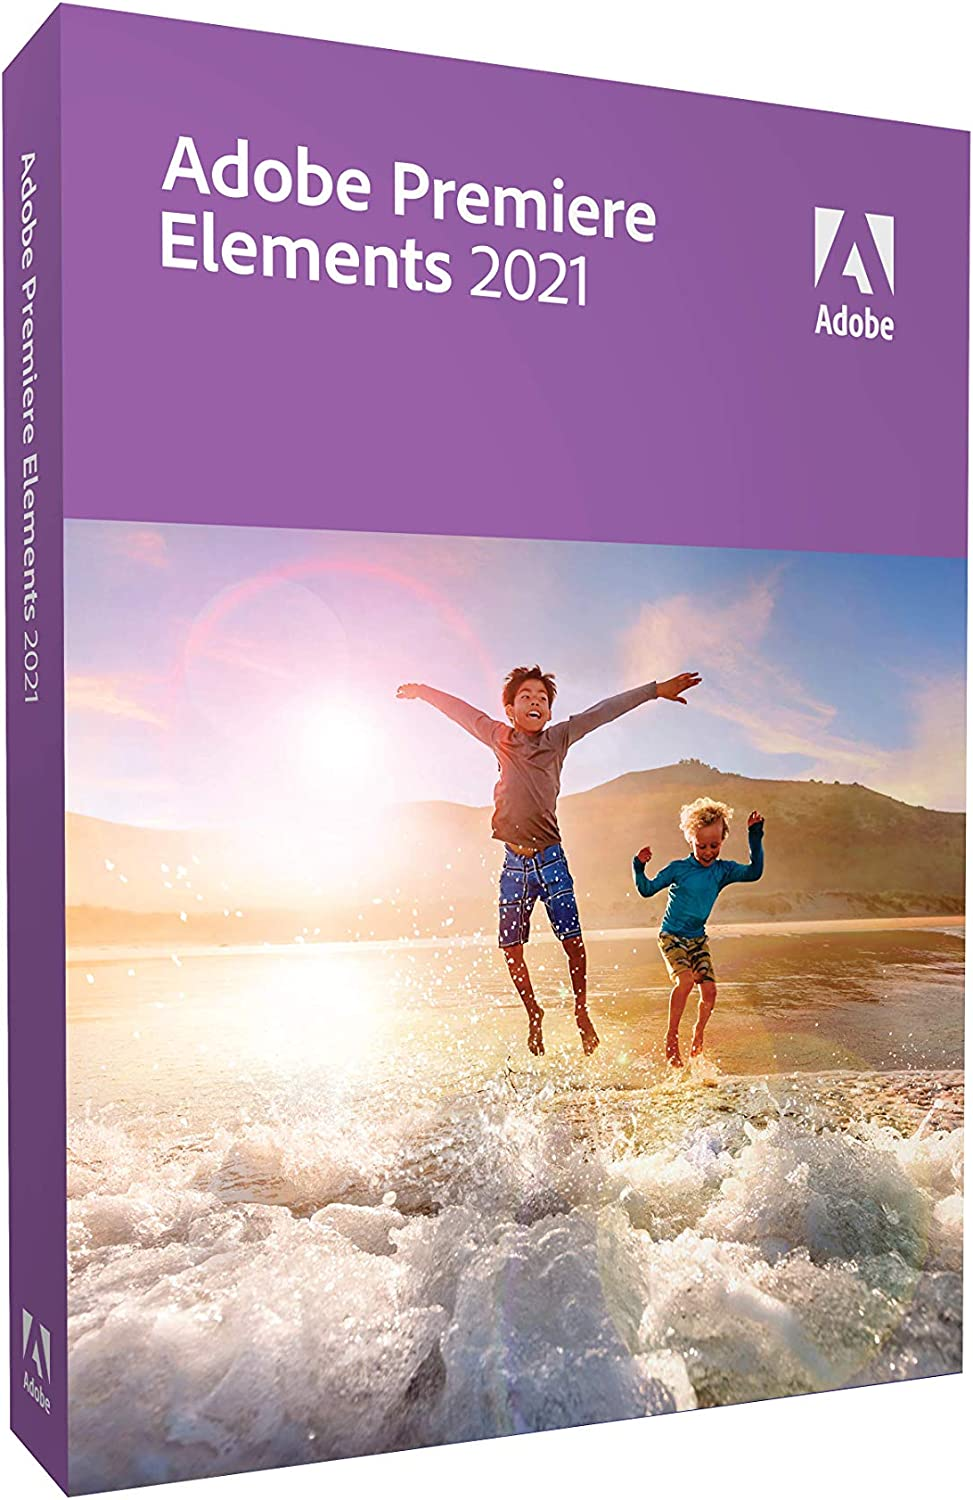 Adobe Premiere Elements 2021 Discount Coupon Code